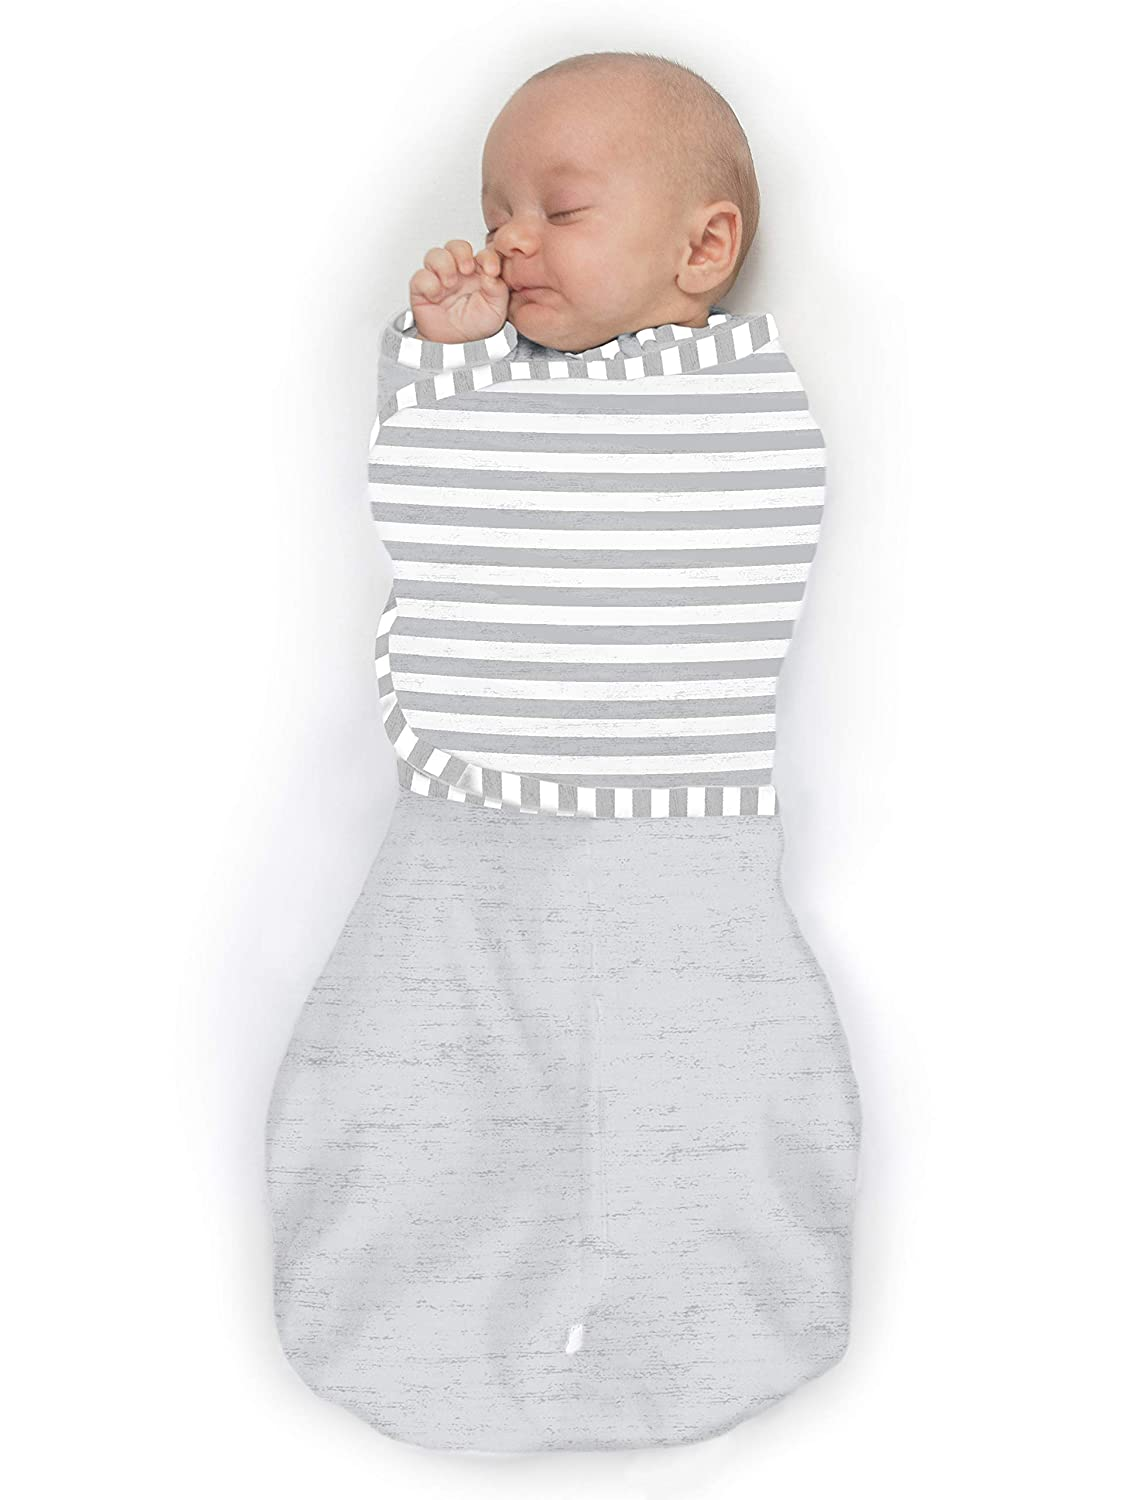 SwaddleDesigns Omni Swaddle Sack with Wrap & Arms Up Sleeves & Mitten Cuffs, Heathered Sterling & Stripes, Small, 0-3 Months